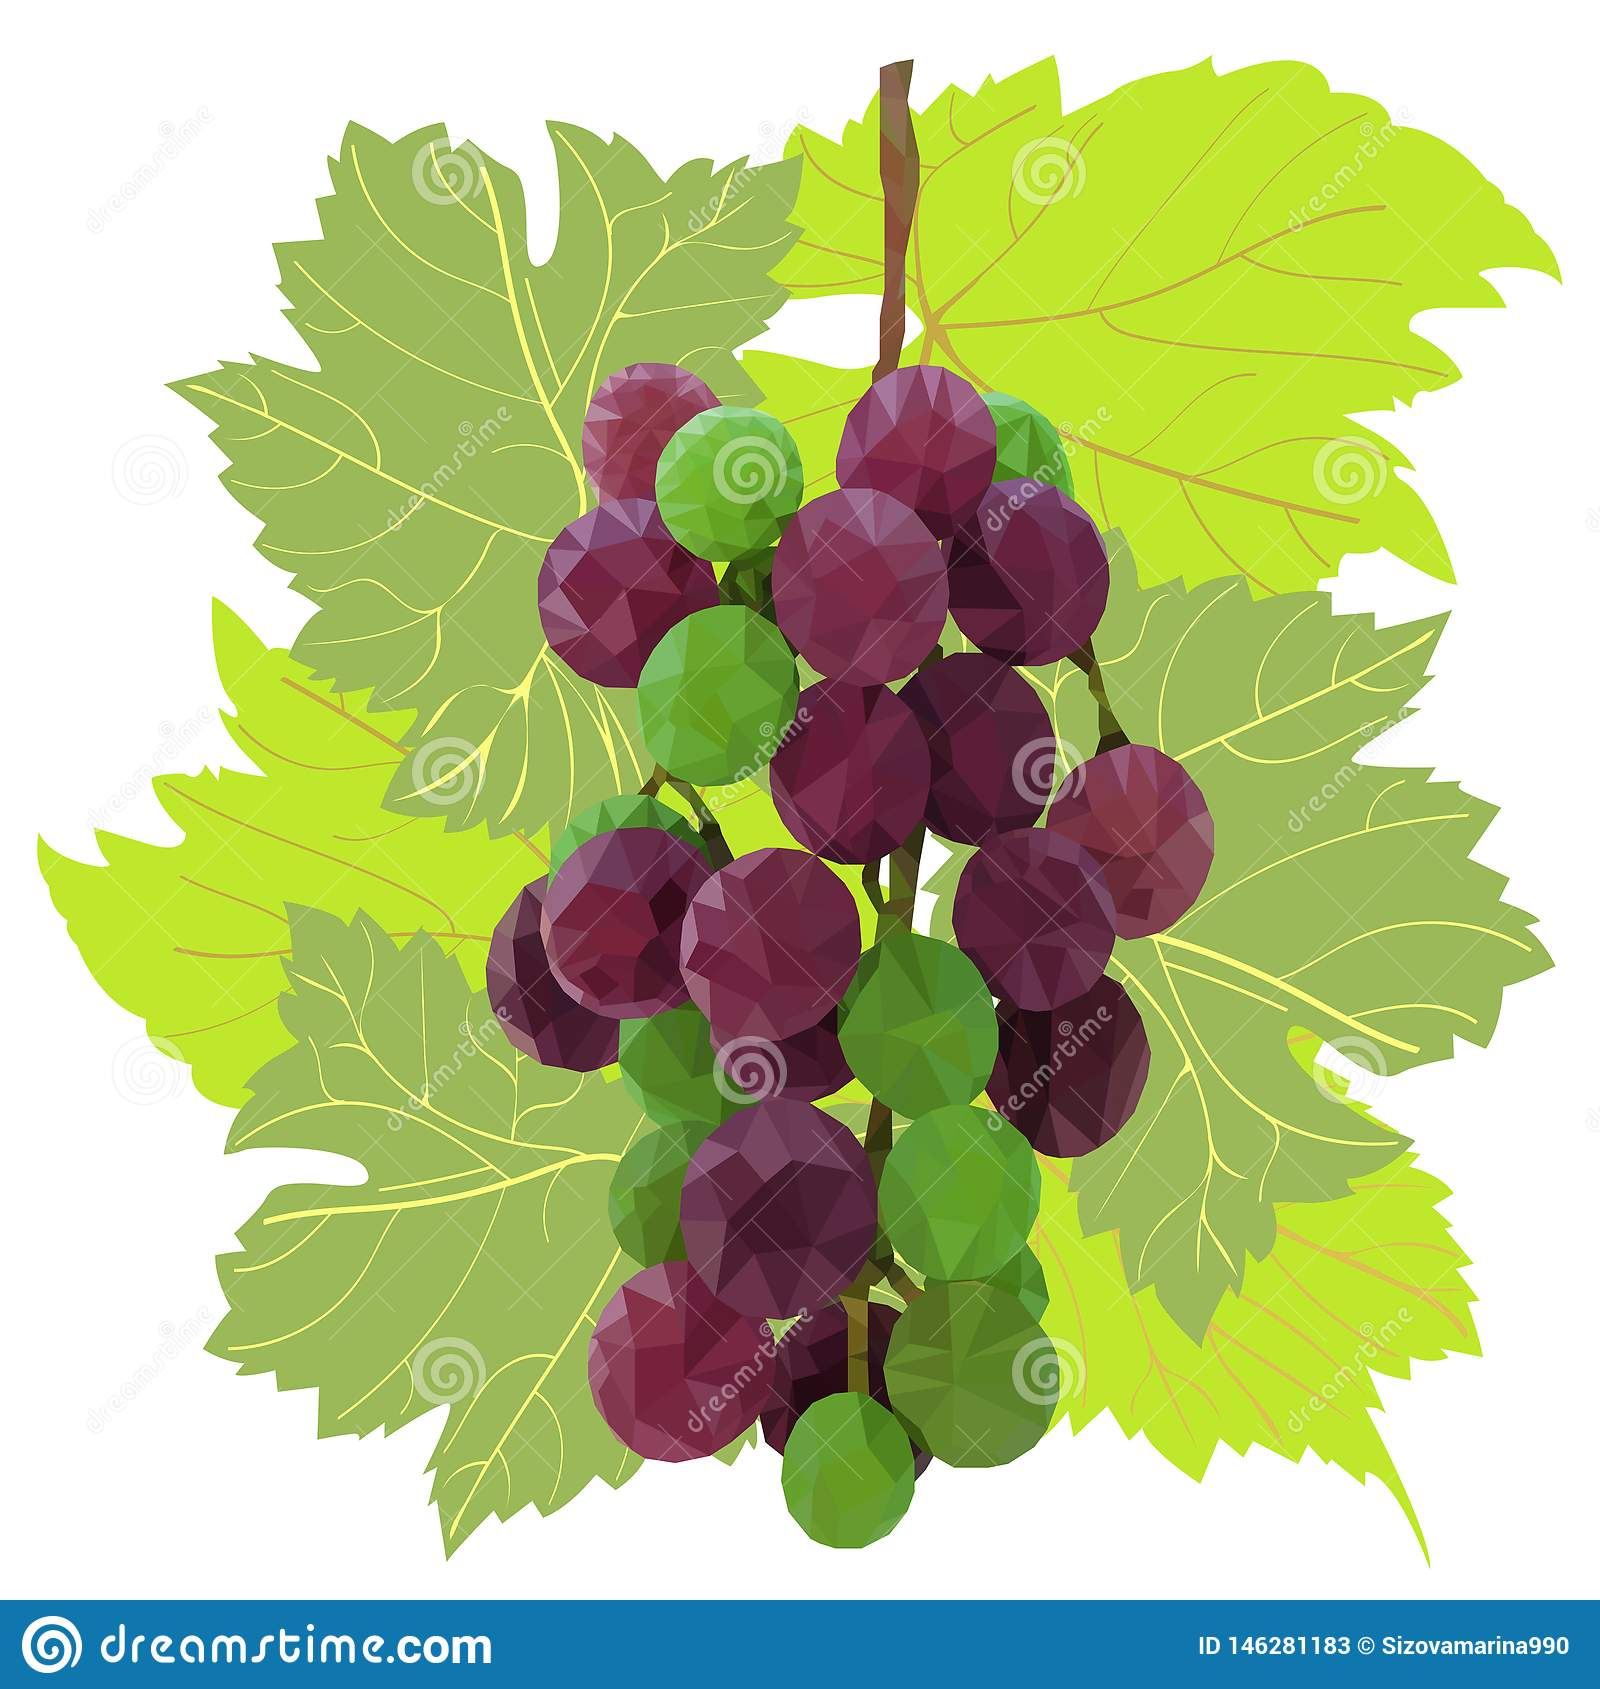 Branch of beautiful multi-colored low-poly grape framed by patterned leaves